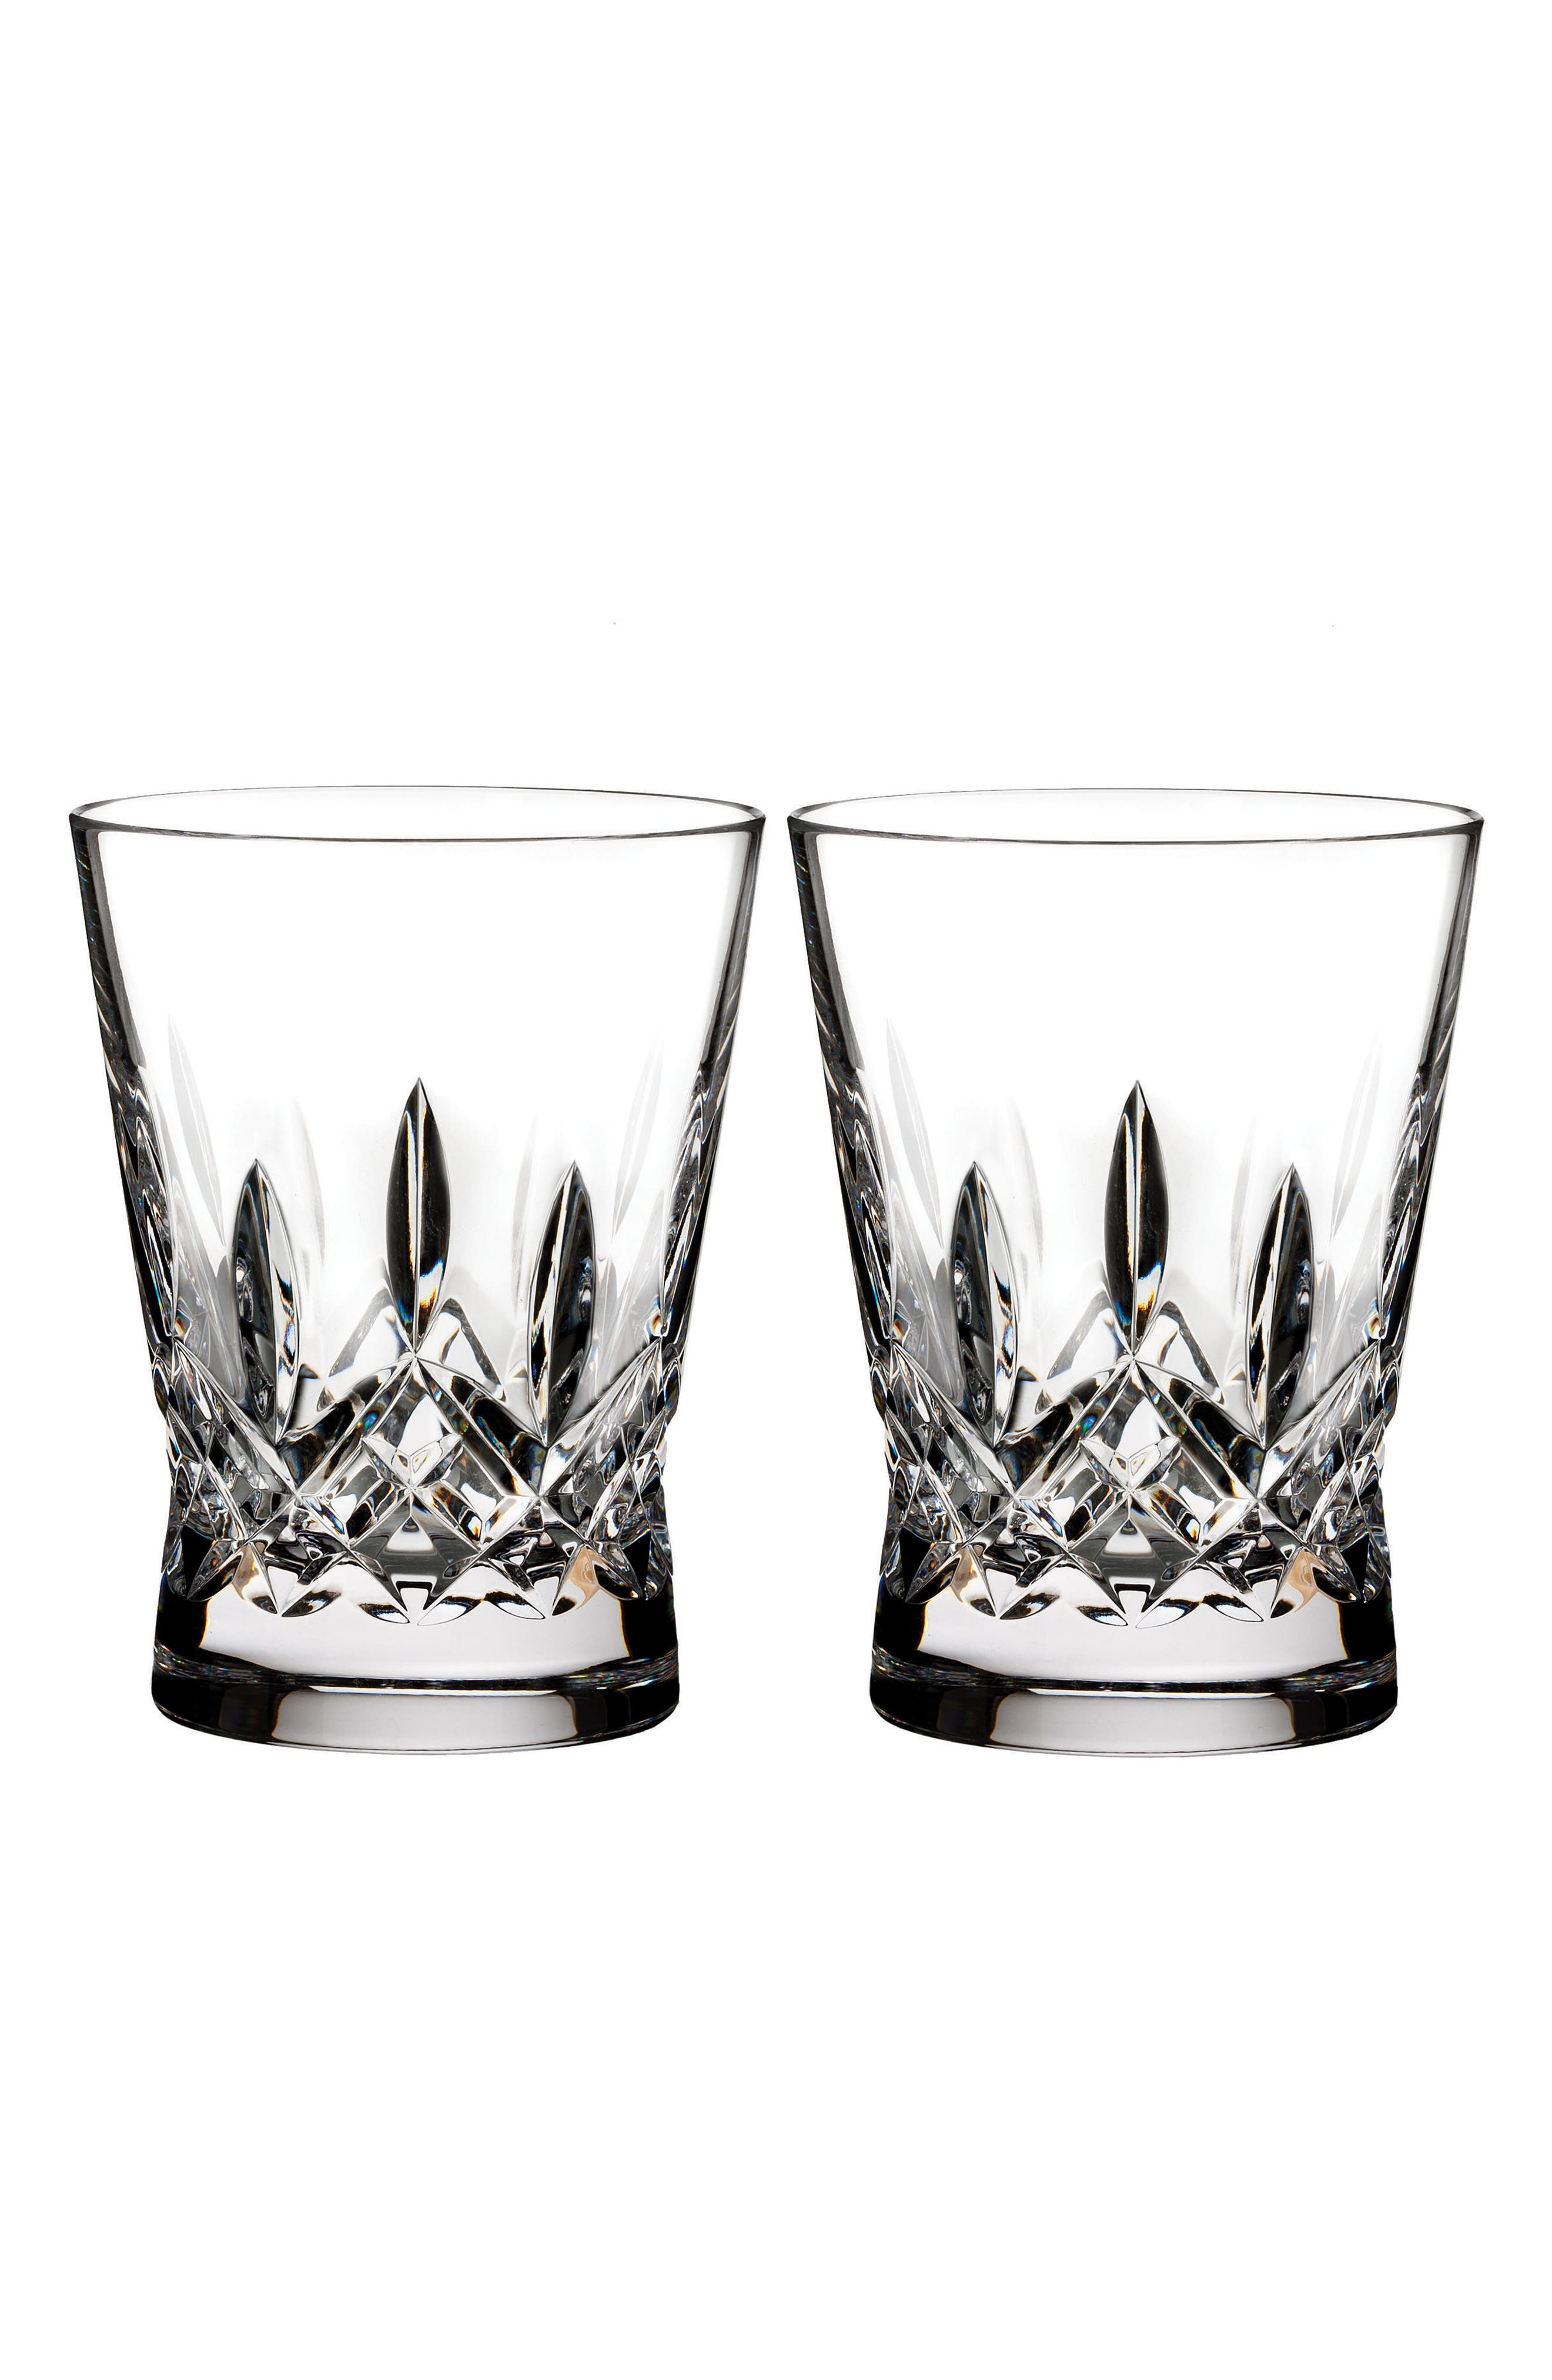 Main Image - Waterford Lismore Pops Set of 2 Lead Crystal Old Fashioned Glasses